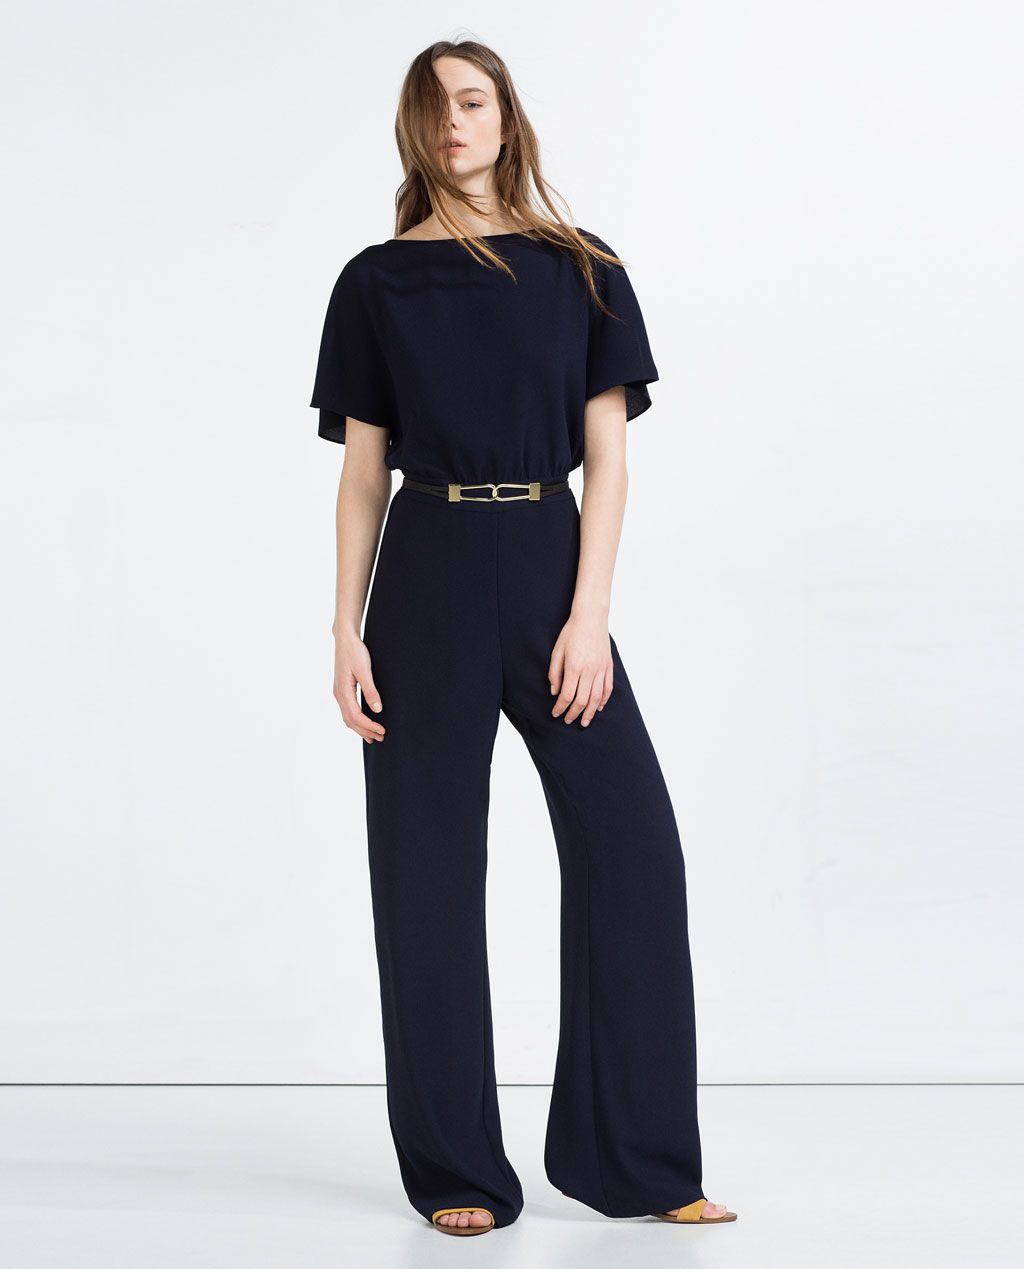 732c494c5d83 JUMPSUIT WITH WAIST SEAM-JUMPSUITS-WOMAN